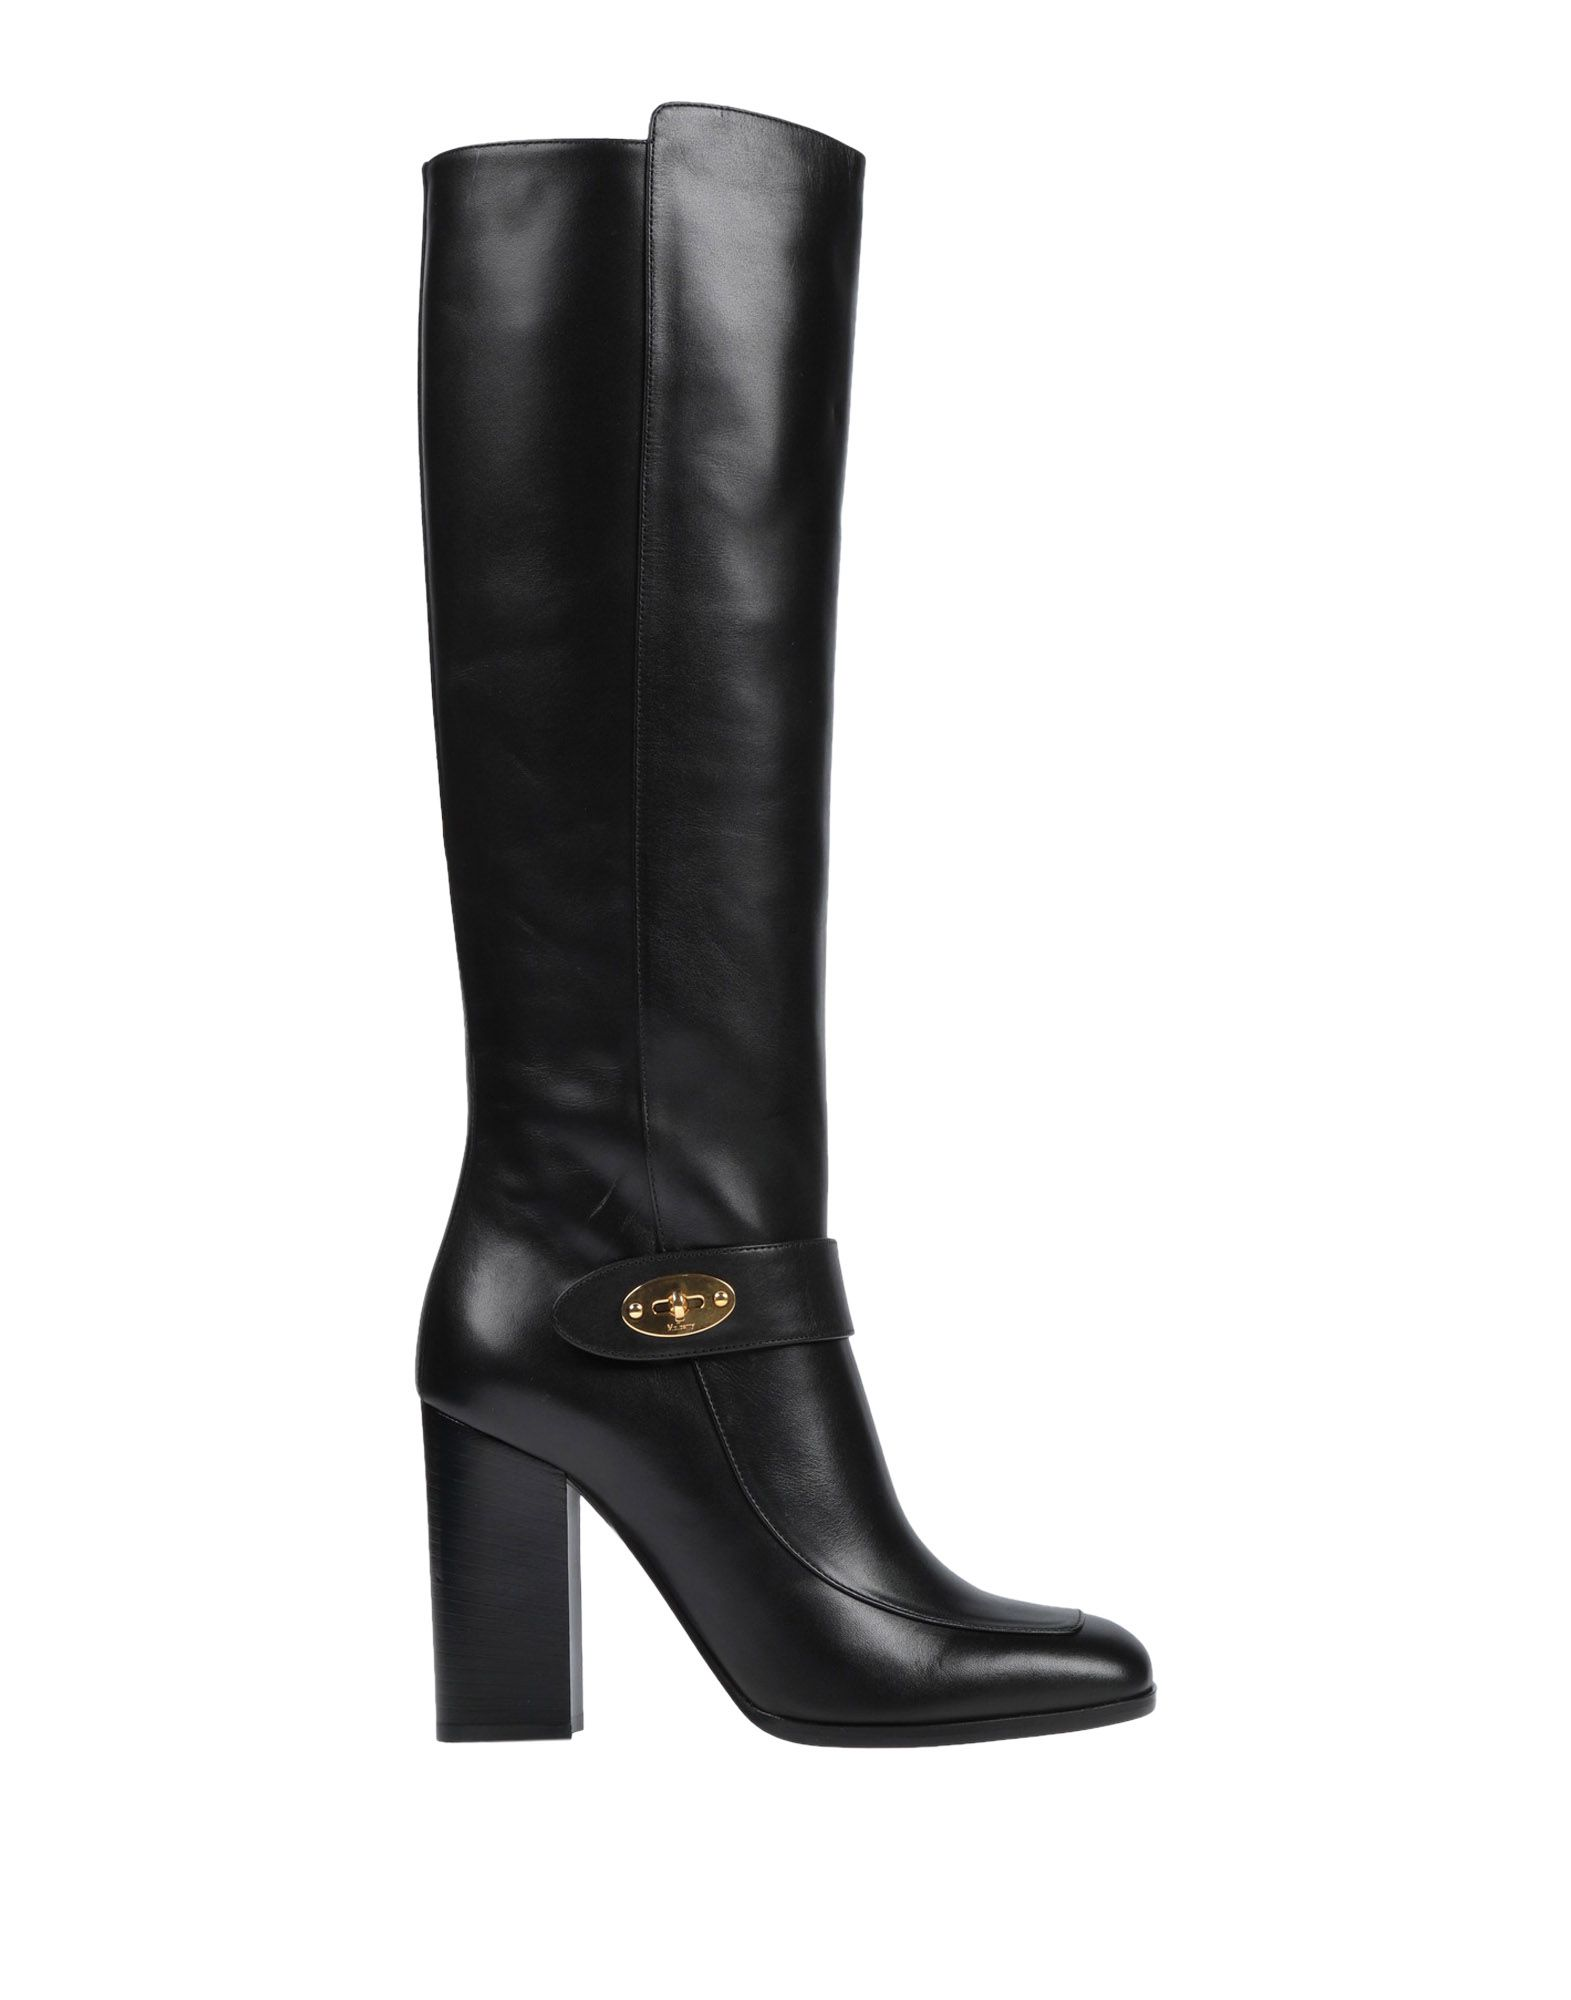 Mulberry Boots - Women Mulberry United Boots online on  United Mulberry Kingdom - 11539001LB 318161